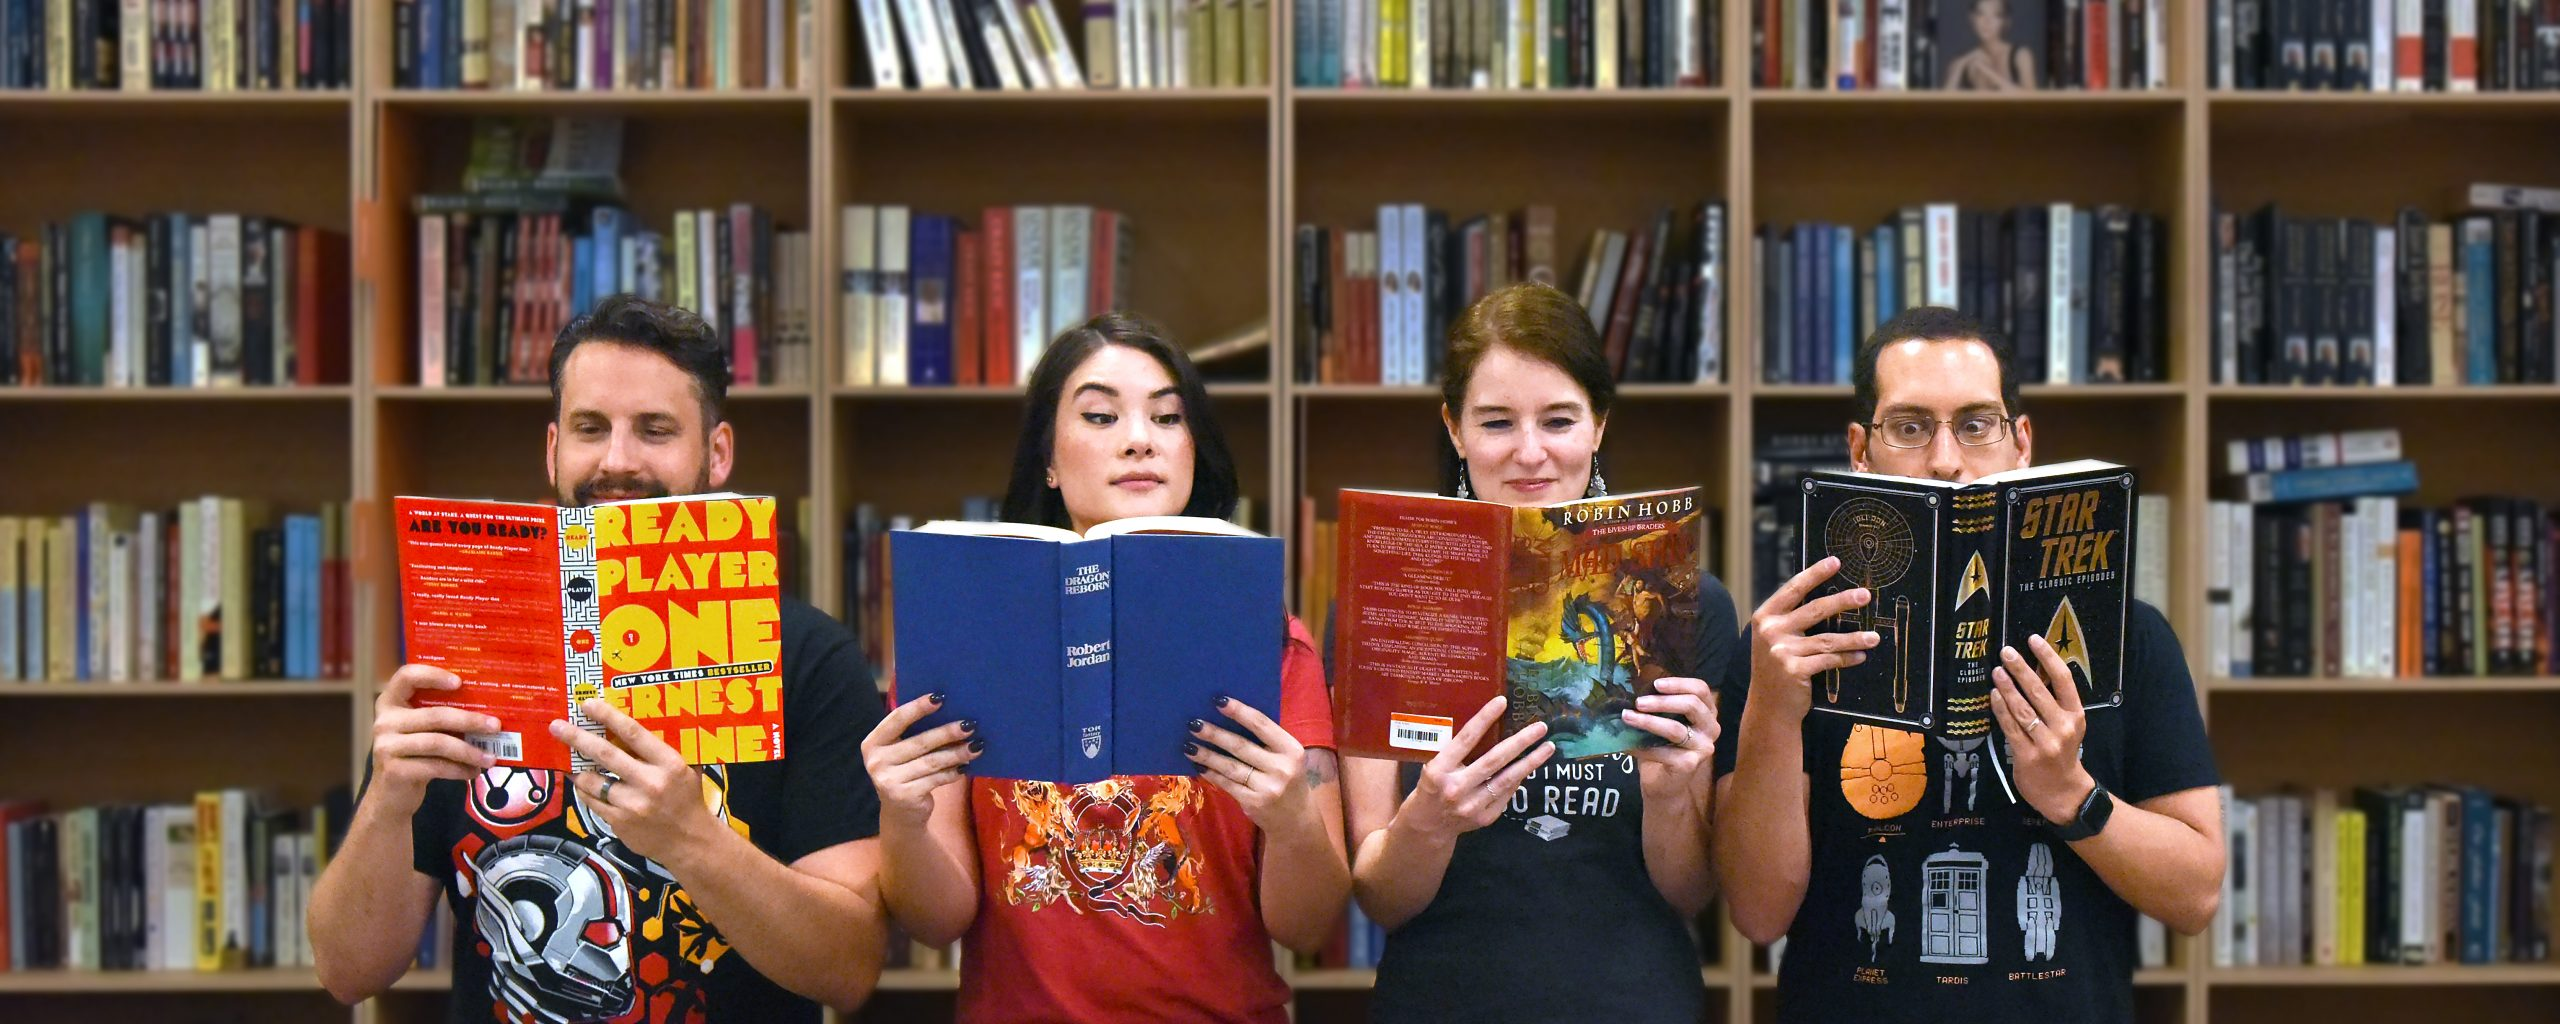 Literarily Wasted Online Book Club Brings Geeky Books To The People The Alabama Weather Blog Mobile 7,255 likes · 75 talking about this. literarily wasted online book club